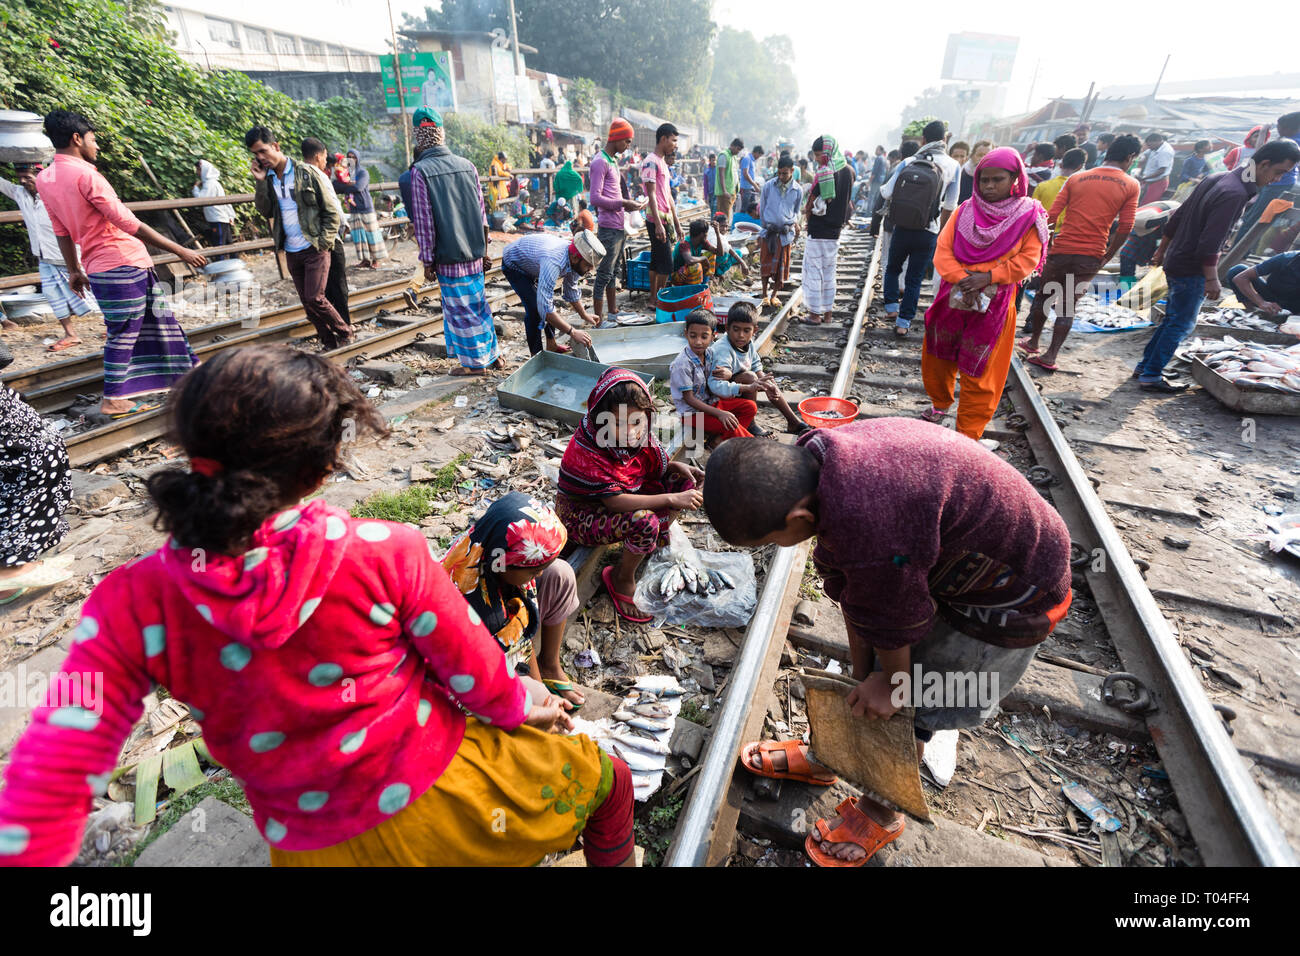 A local market set on railroad track dangerously close to passing trains, Dhaka, Bangladesh - Stock Image